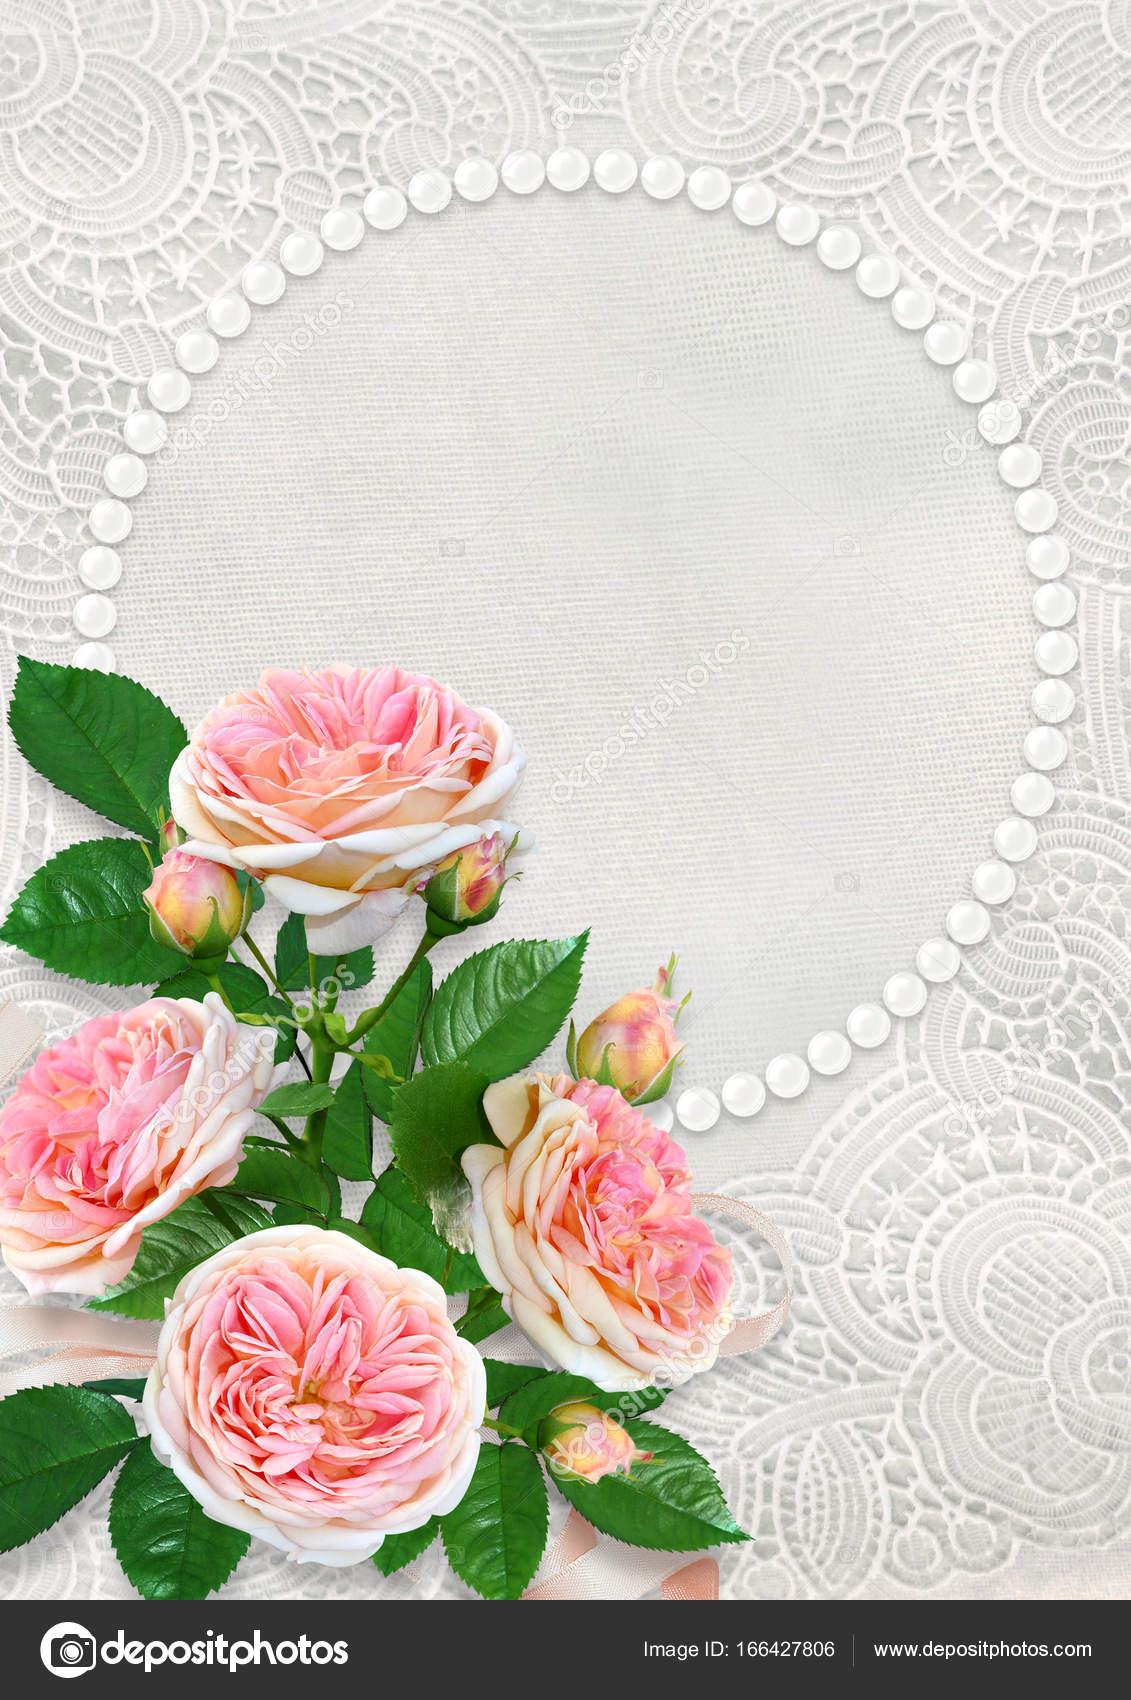 Beautiful Pink Roses On A Lace Vintage Background With Frame Of Pearls And Space For Text Photo By Glaz